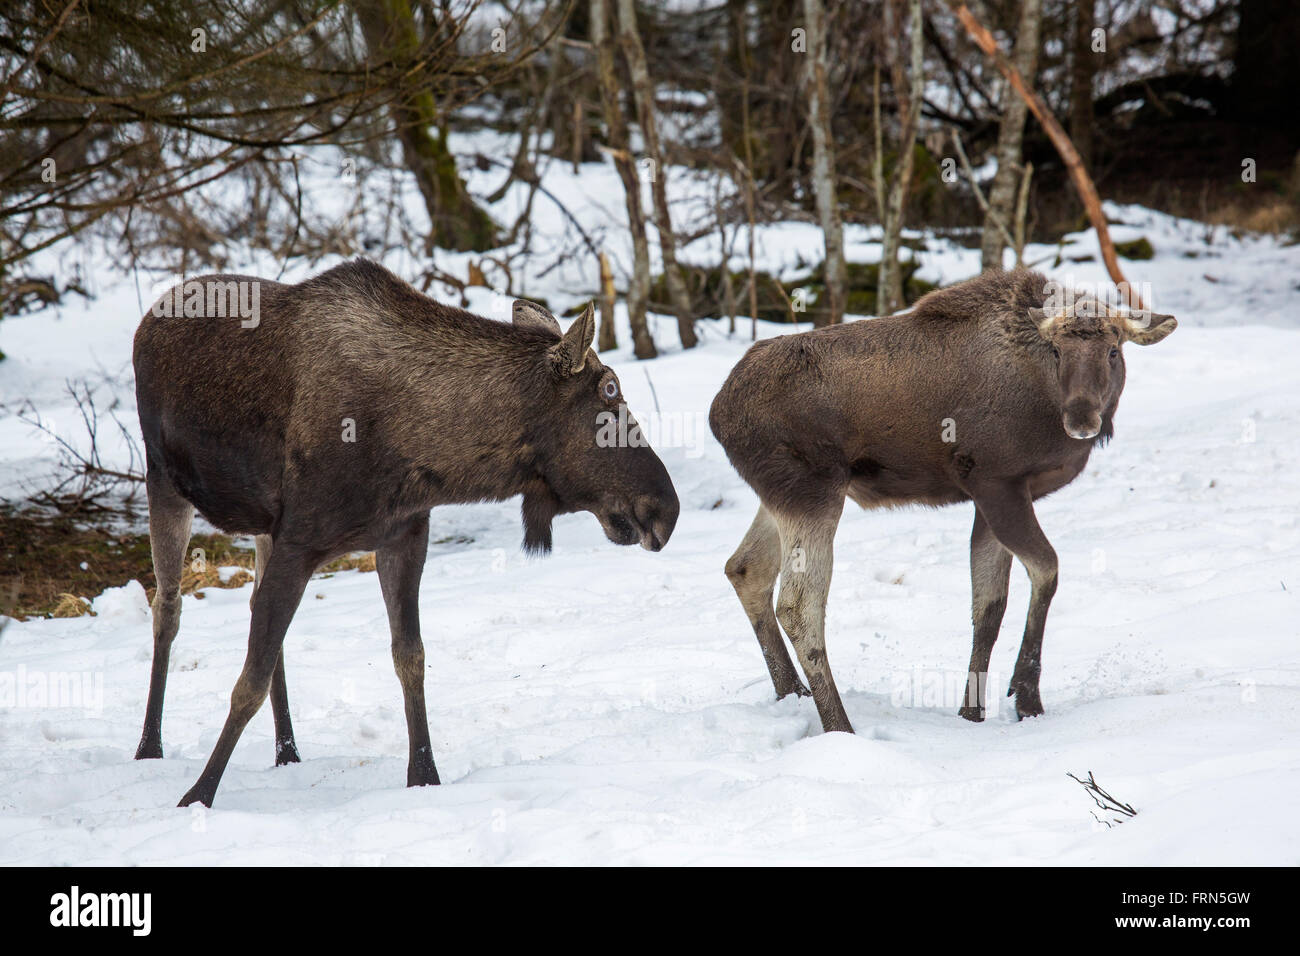 Moose / elk (Alces alces) bull with calf in forest in the snow in winter - Stock Image